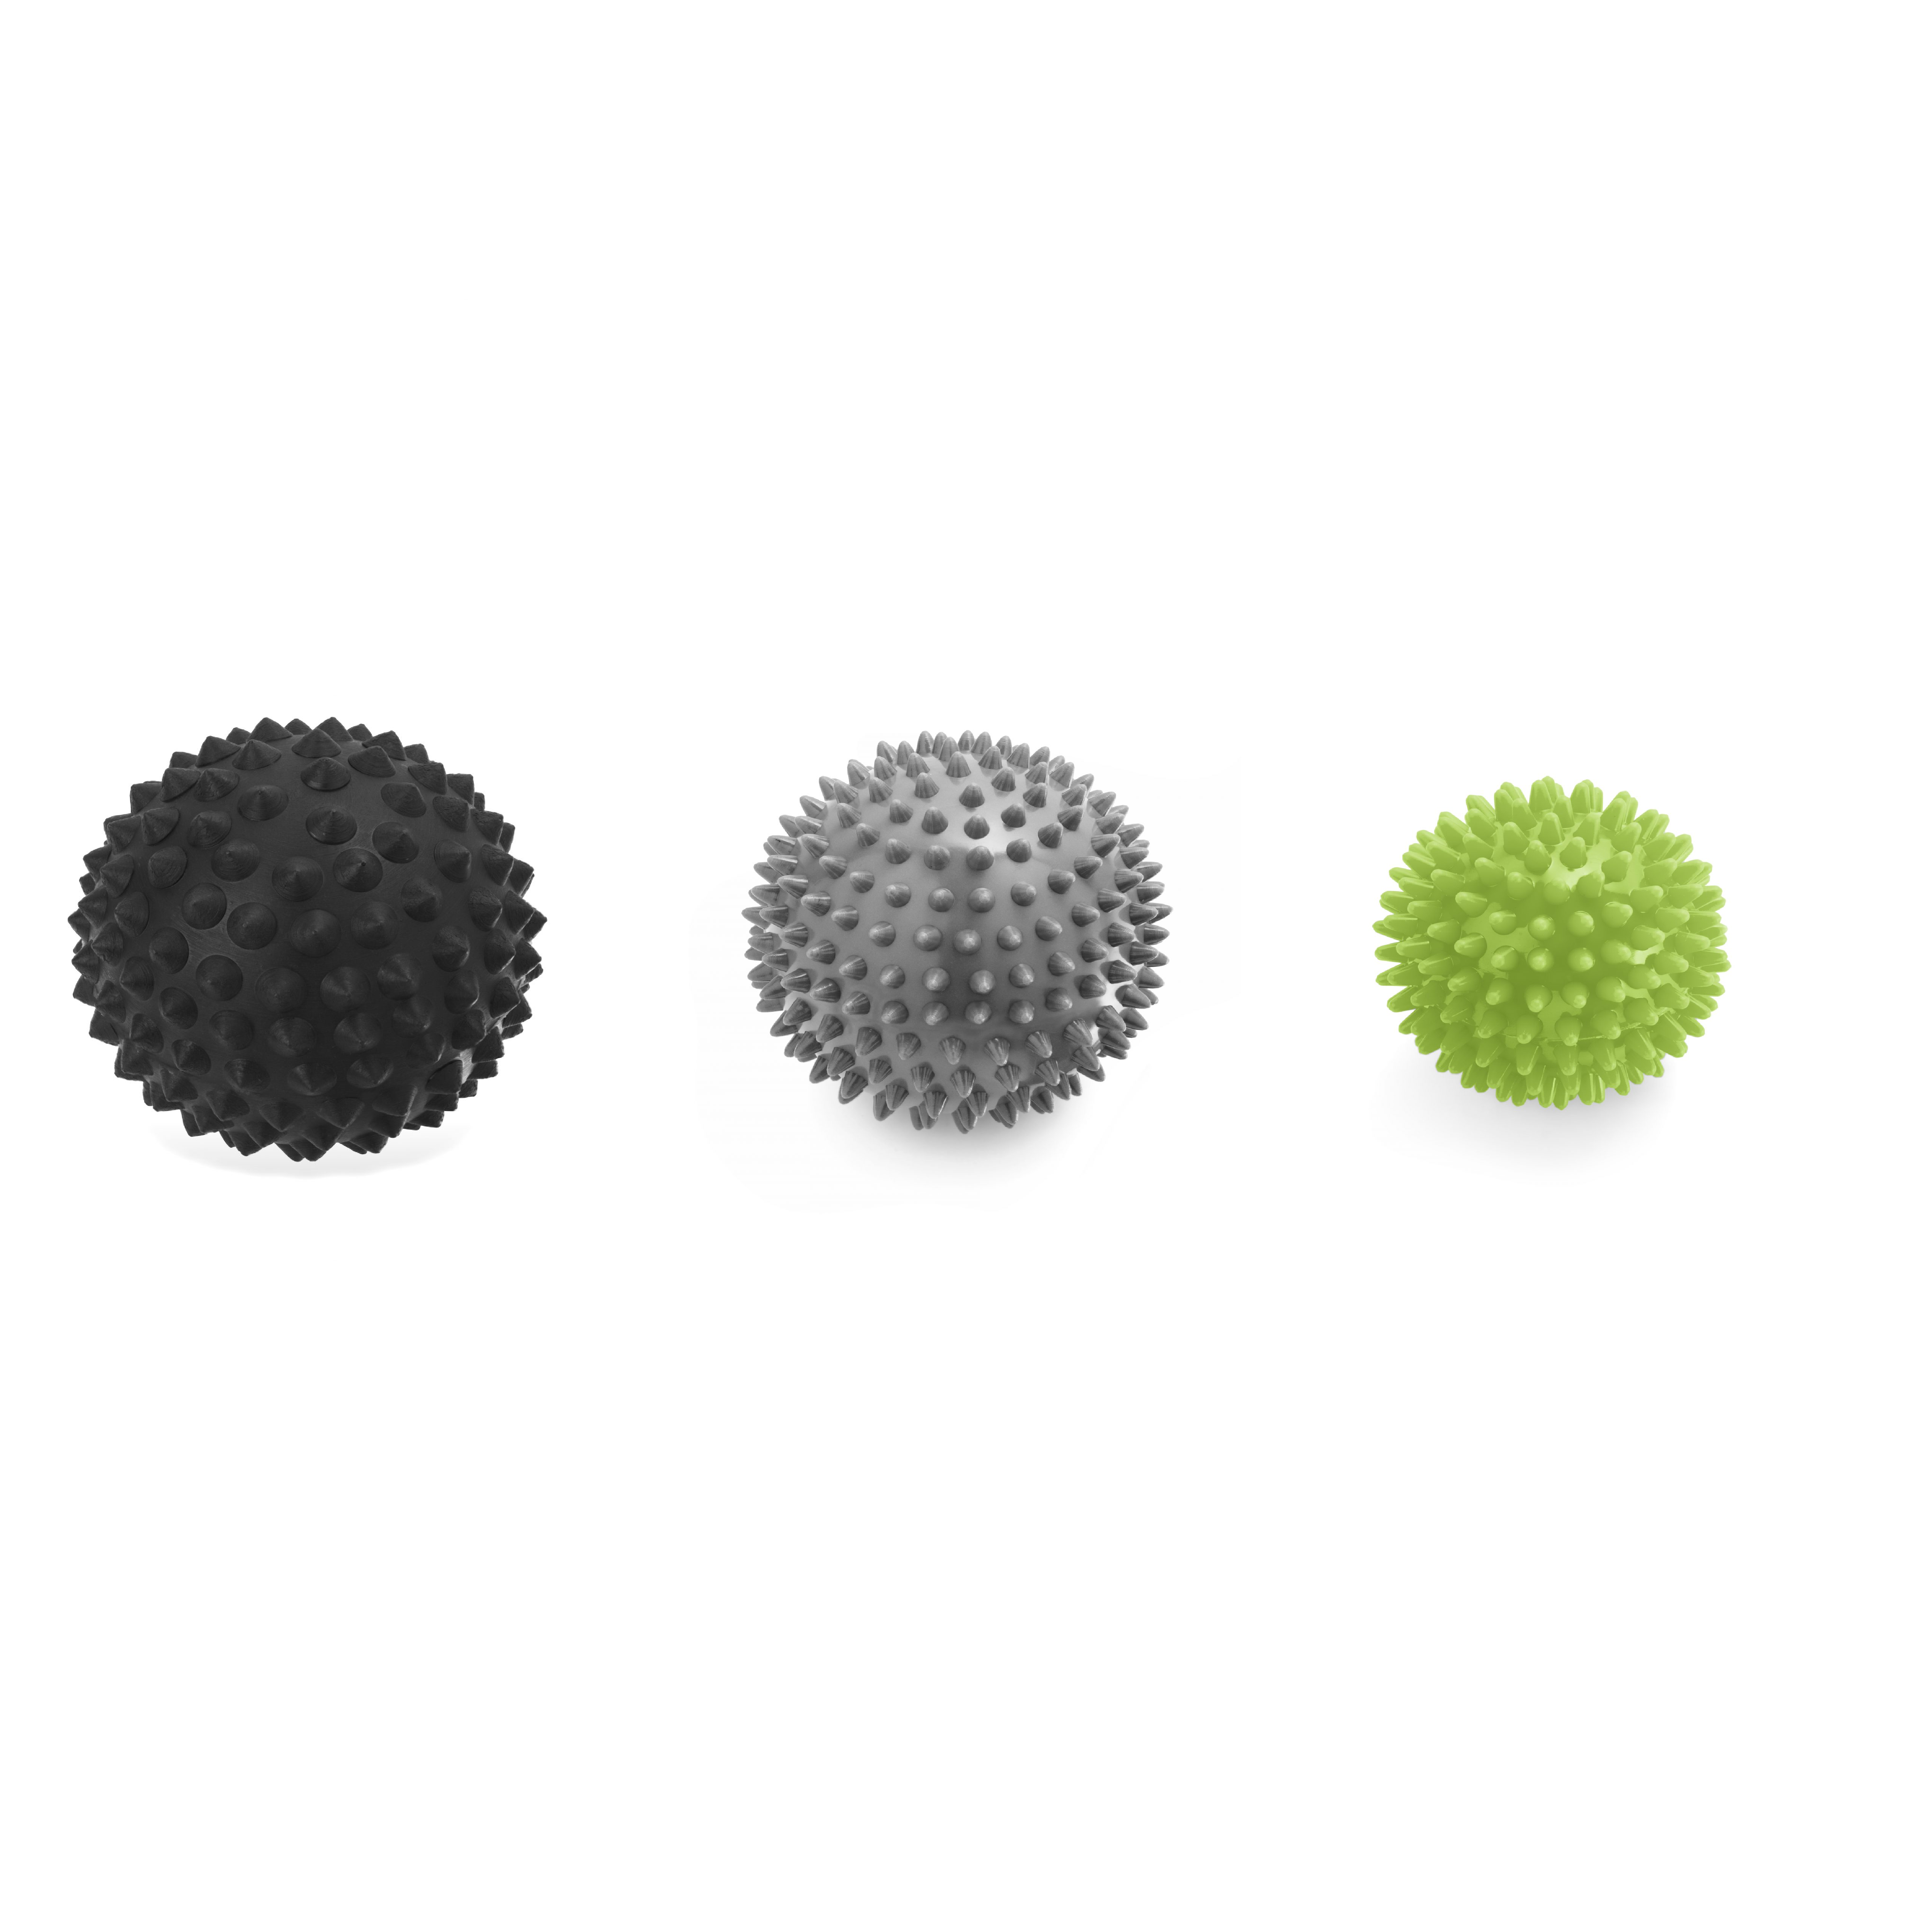 3 spikey massage balls